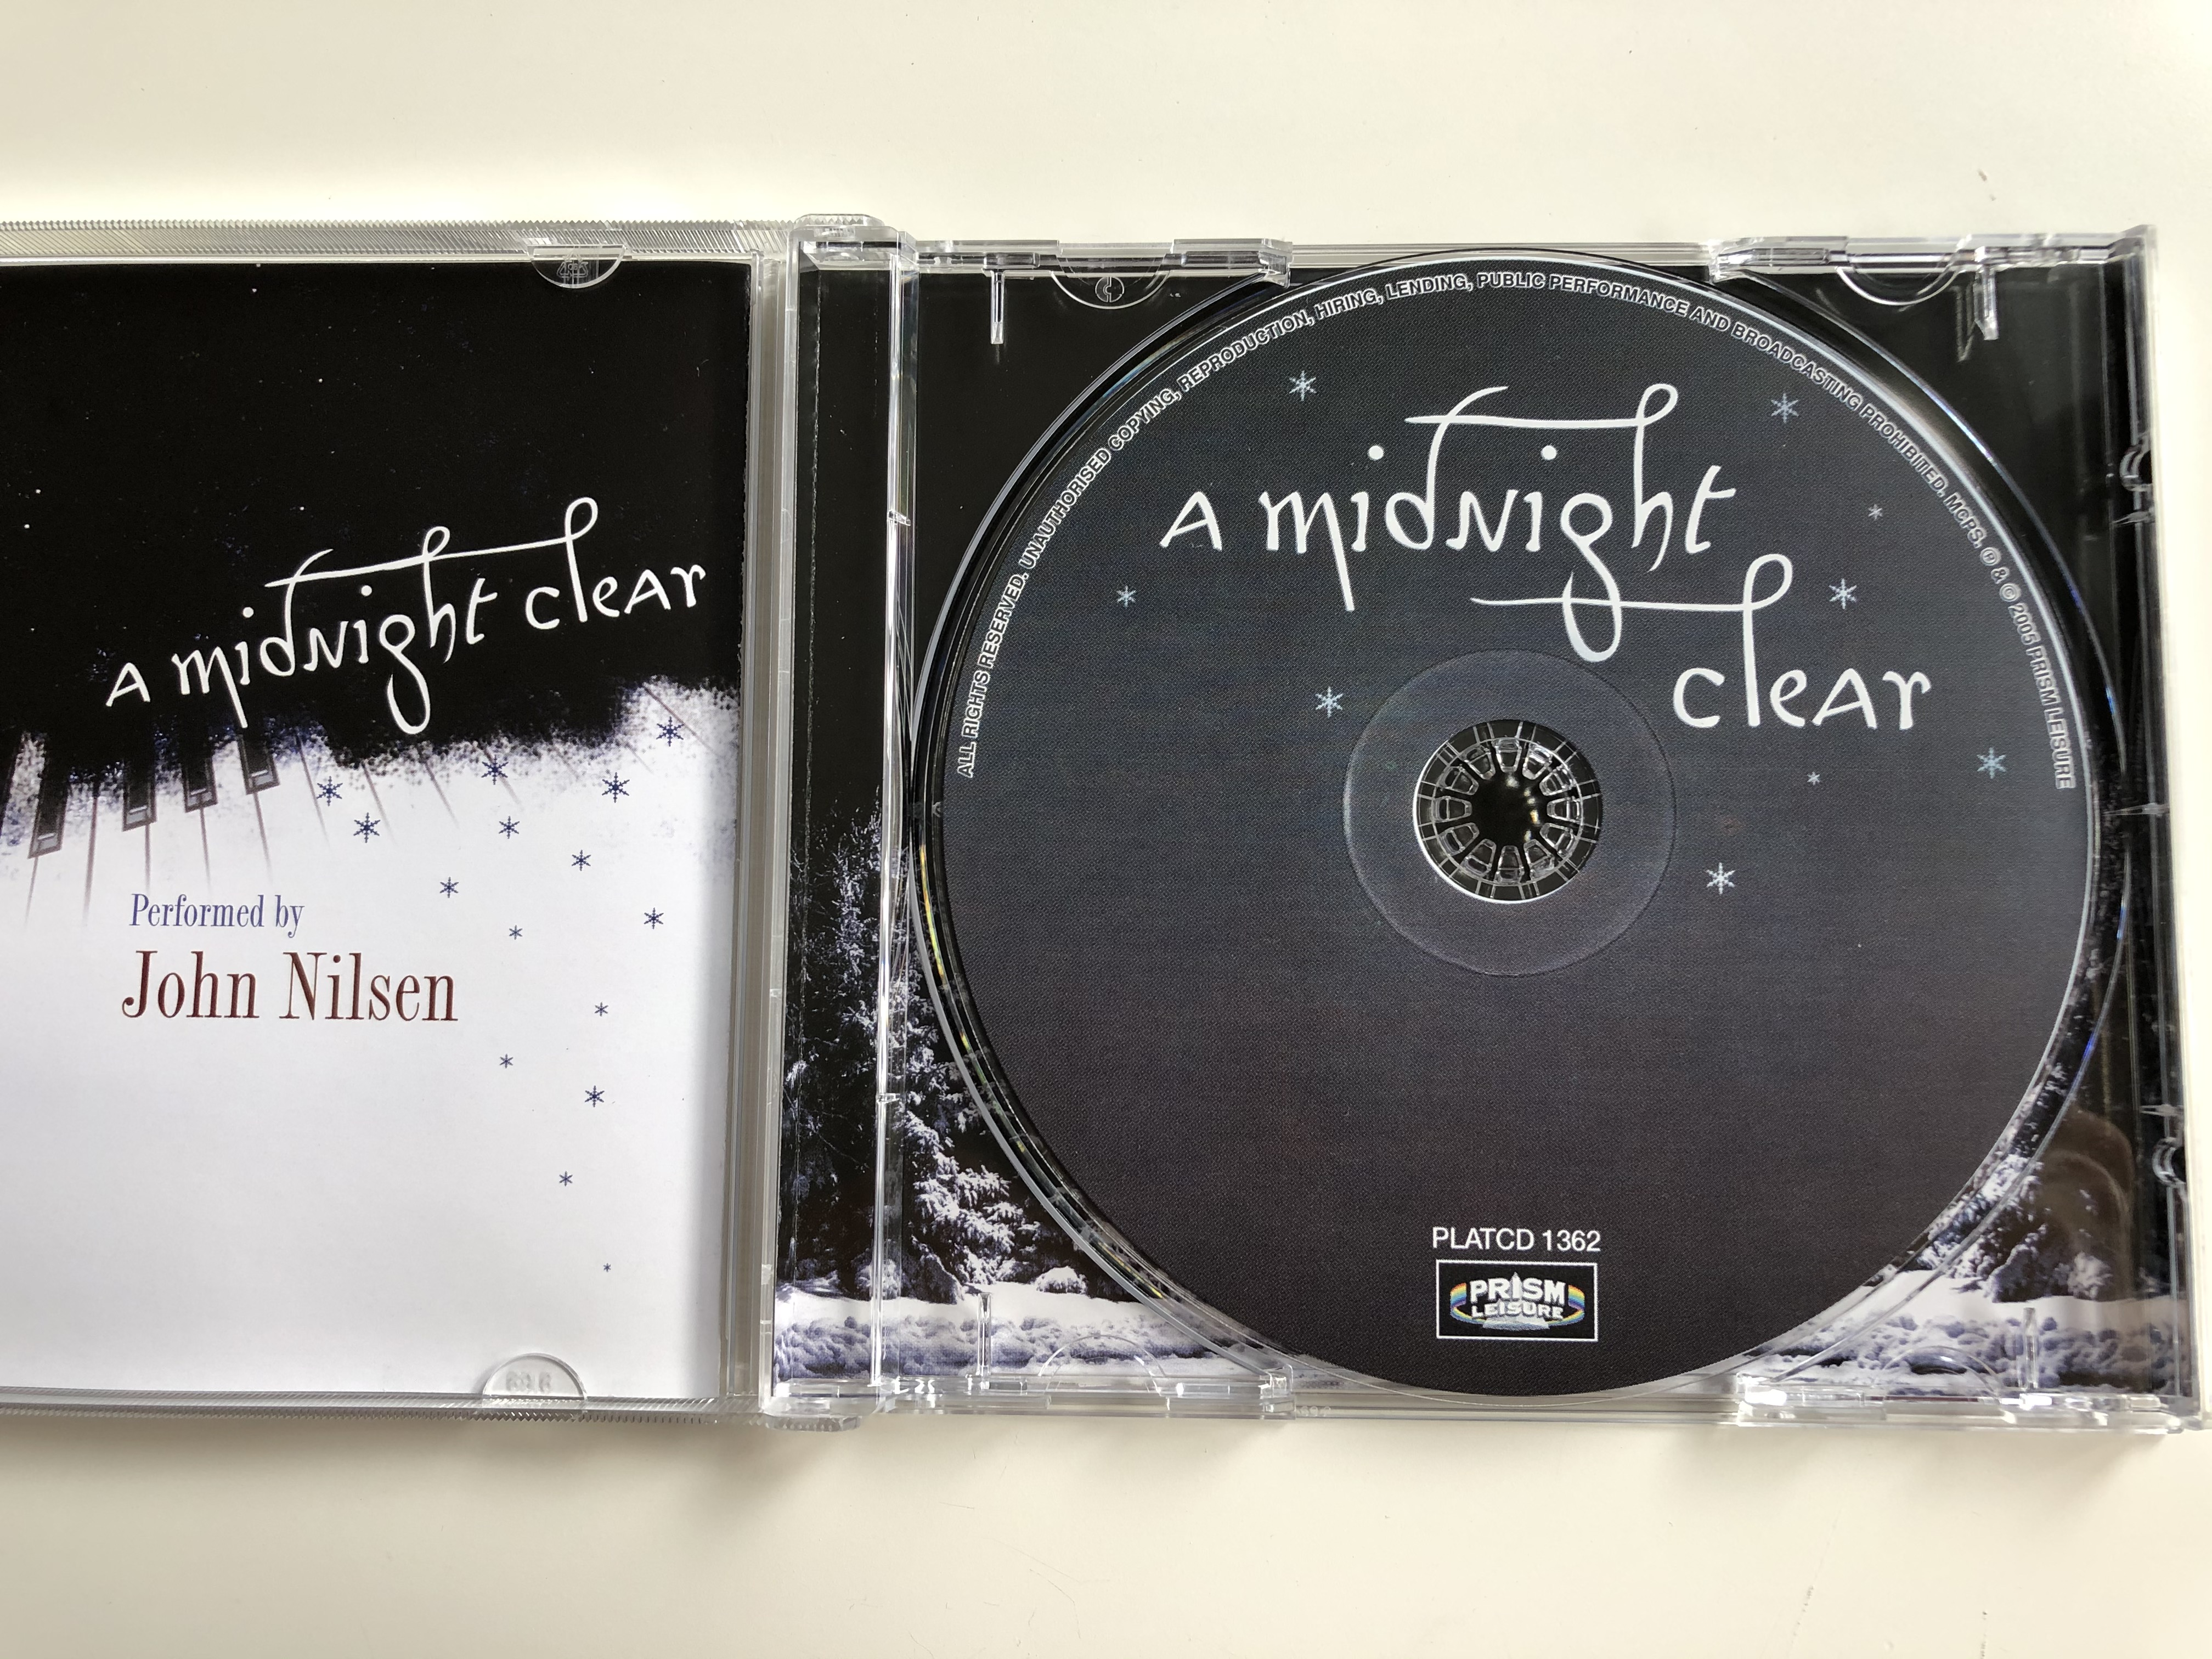 a-midnight-clear-enchanting-traditional-christmas-songs-on-piano-performed-by-john-nilsen-prism-leisure-audio-cd-2005-platcd-1362-3-.jpg